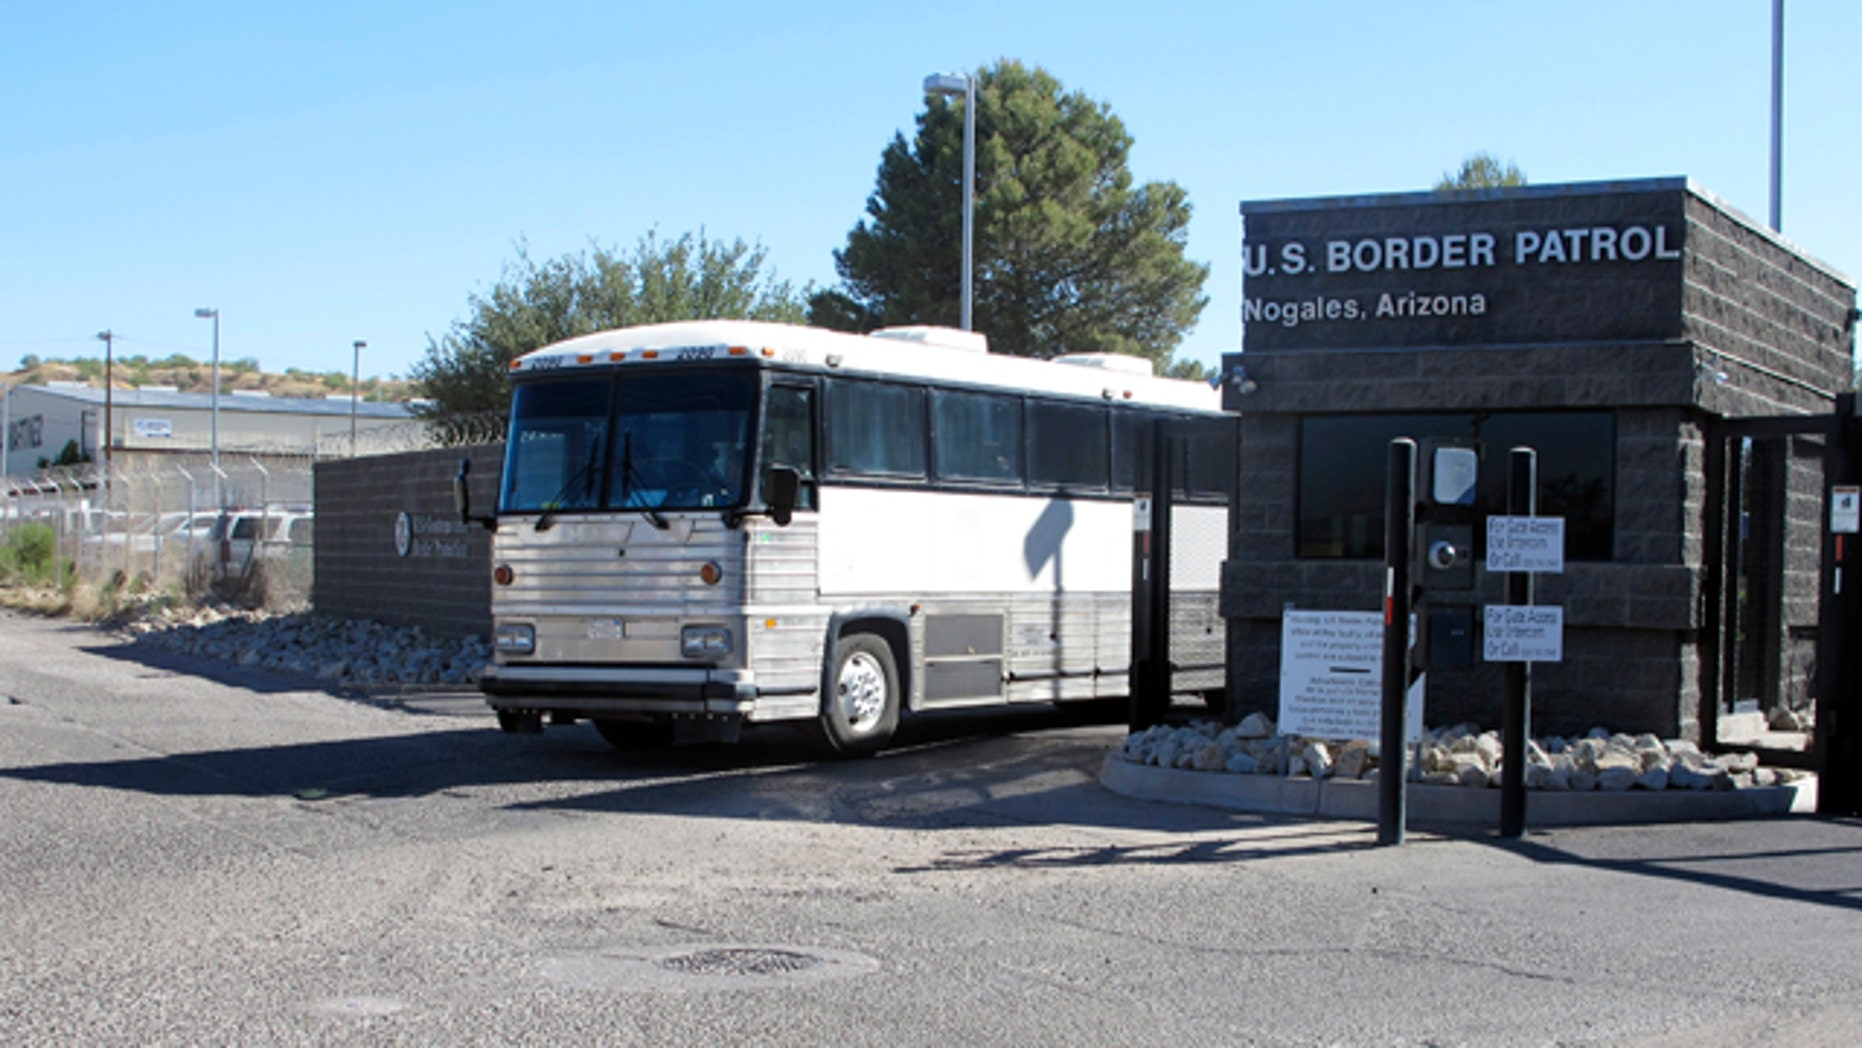 June 7, 2014: A bus leaves the entrance of the U. S. Border Patrol facility in Nogales, Ariz. Arizona officials said they are rushing federal supplies to this makeshift holding center in the southern part of the state that's housing hundreds of migrant children and is running low on the basics. (AP Photo/Brian Skoloff)